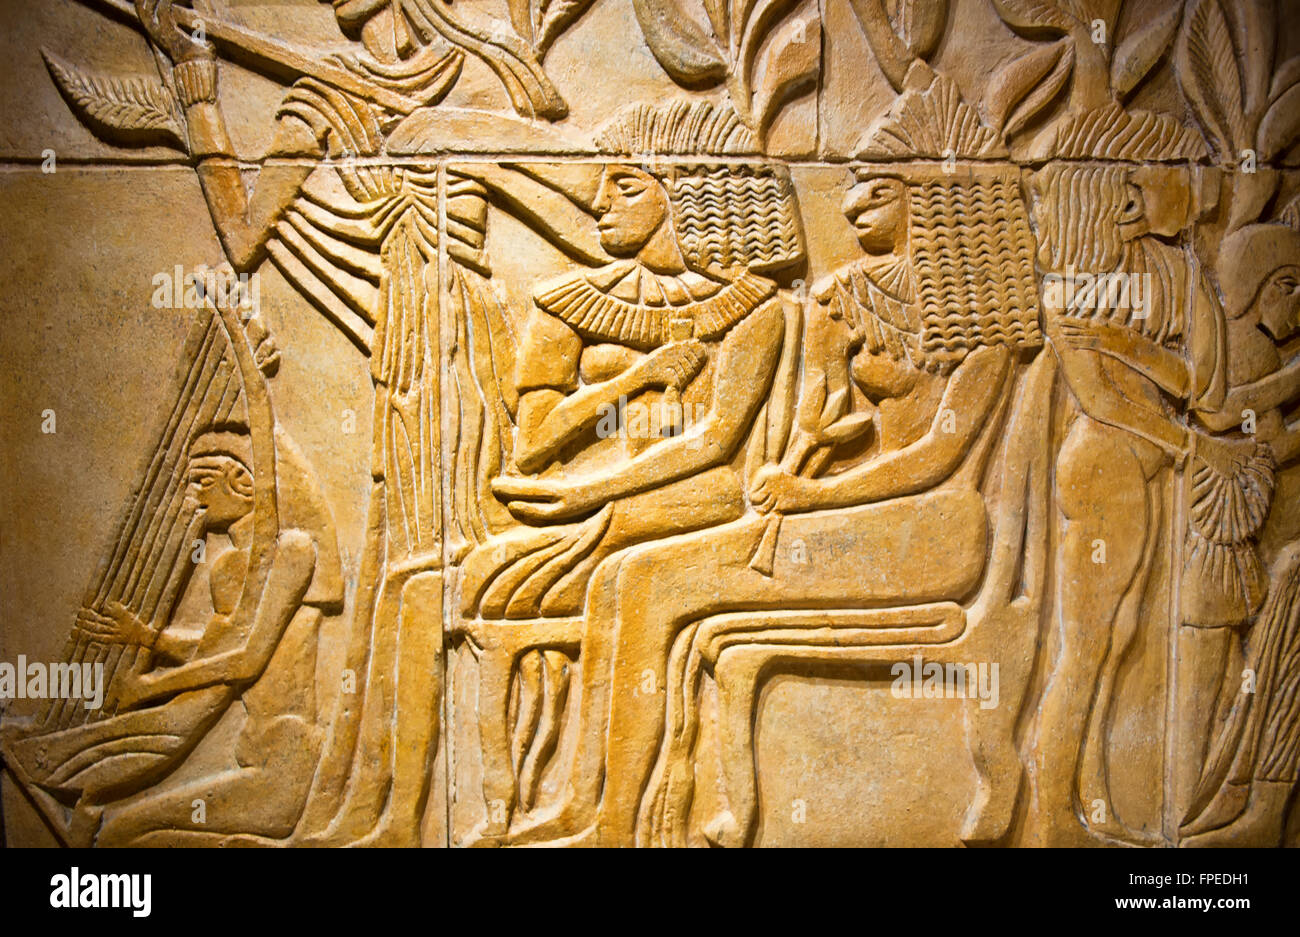 Ancient egyptian relief carving stock photos